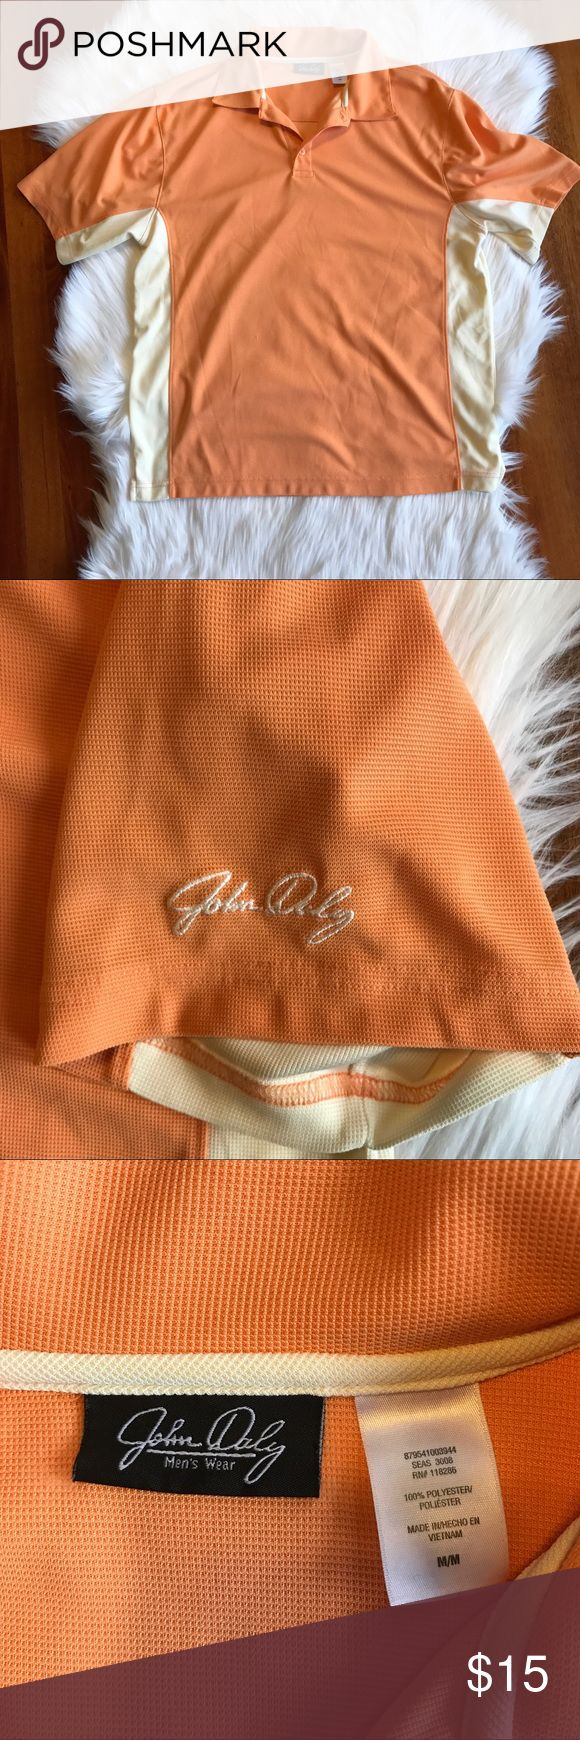 Men's Orange John Daly Golf Polo Excellent pre worn condition. Perfect for any golf occasion. All sales final.   🌟No Returns If Item Doesn't Fit - Please Ask For Measurements Instead (Per Posh Rules)  🌟 No Trades John Daly Shirts Polos